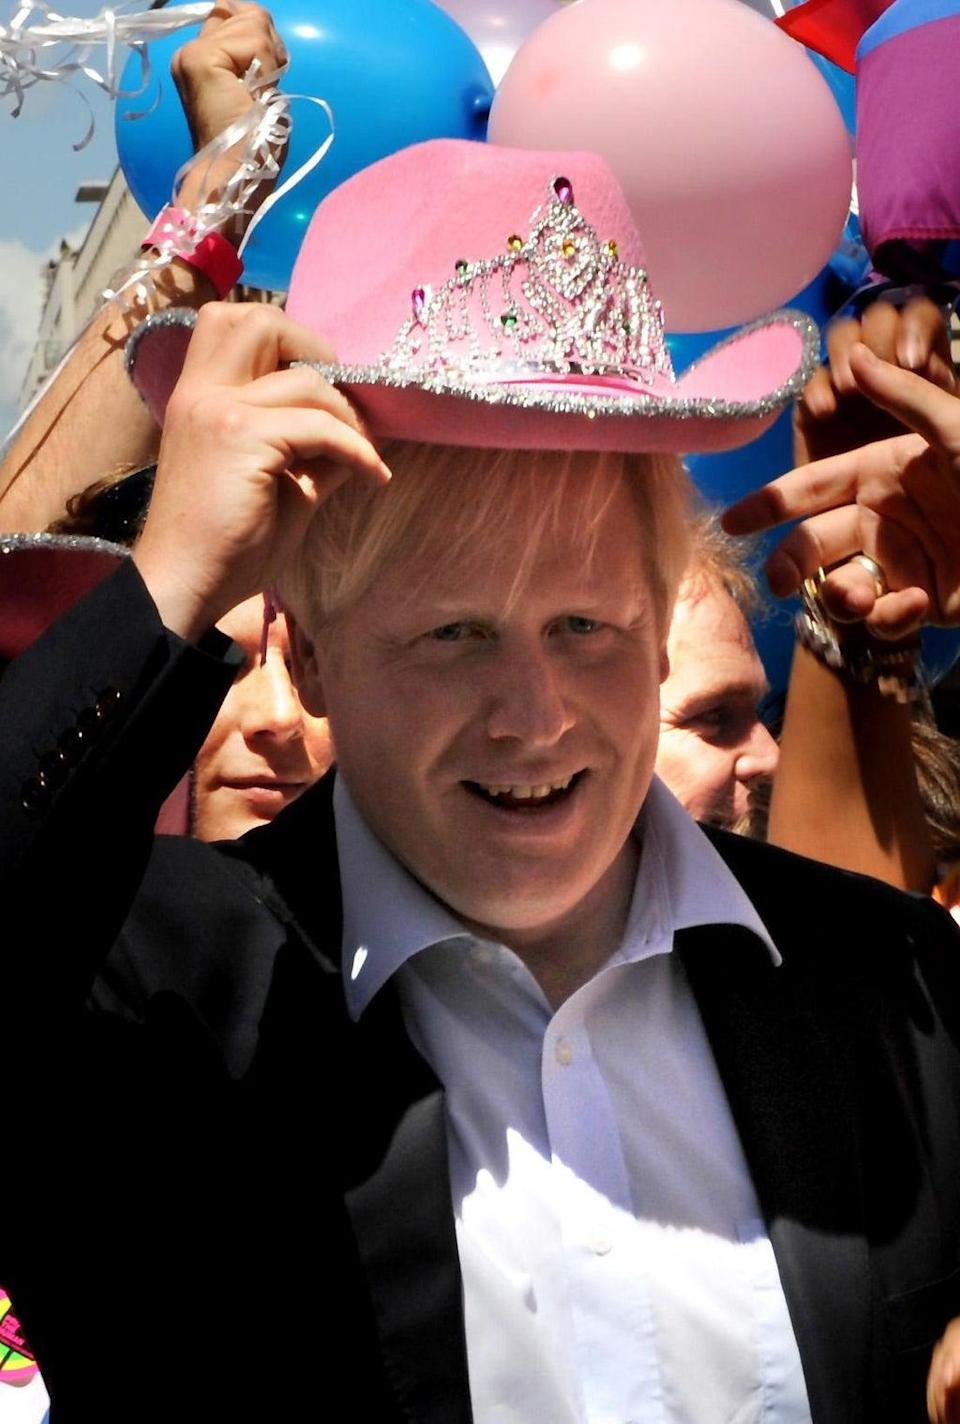 Boris Johnson wears a pink cowboy hat at the Pride London parade (Anthony Delvin/PA) (PA Archive)